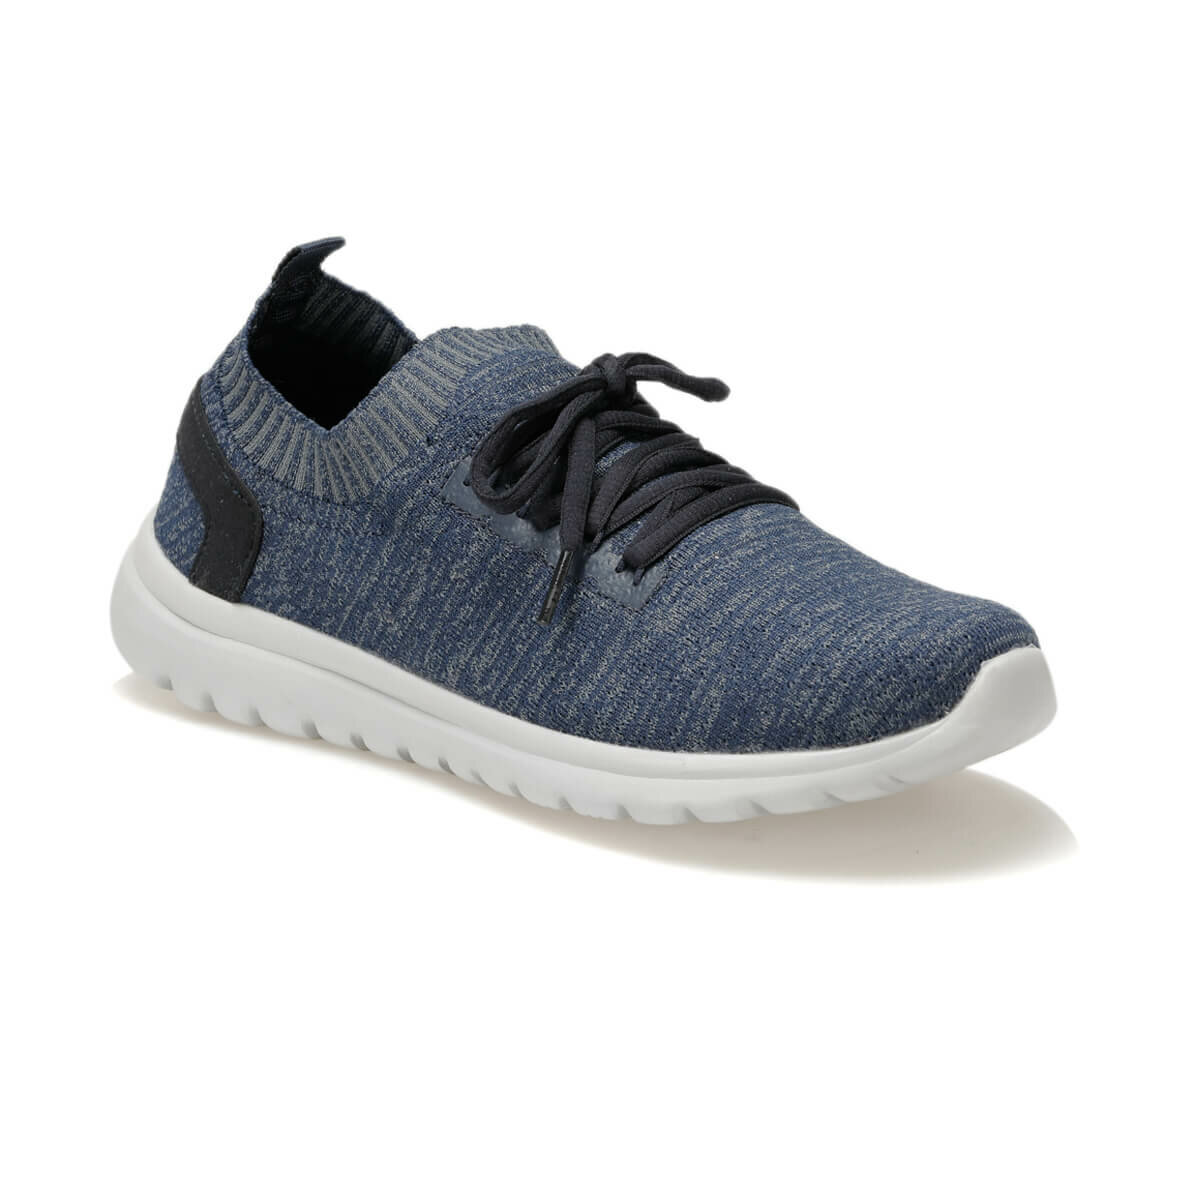 FLO NITO Navy Blue Men 'S Sneaker Shoes KINETIX